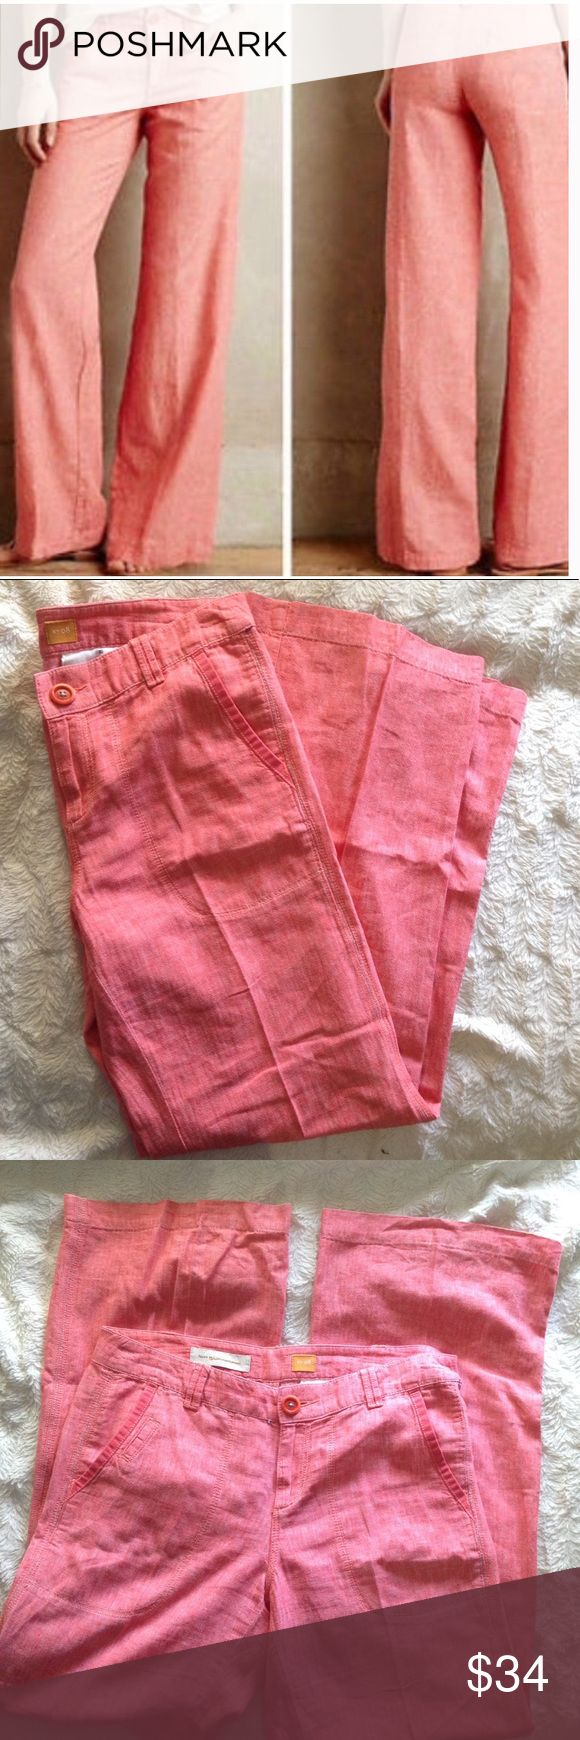 """Pilcro And The Letterpress Linen Wide Leg Pants Salmon colored Anthropologie pants that blend style and comfort! Wide leg. Hip hugger style. 55% Linen, 45% Cotton. Excellent condition - no flaws. Inseam 31"""", rise 9"""" waist laid flat 16.5"""". Anthropologie Pants Wide Leg"""